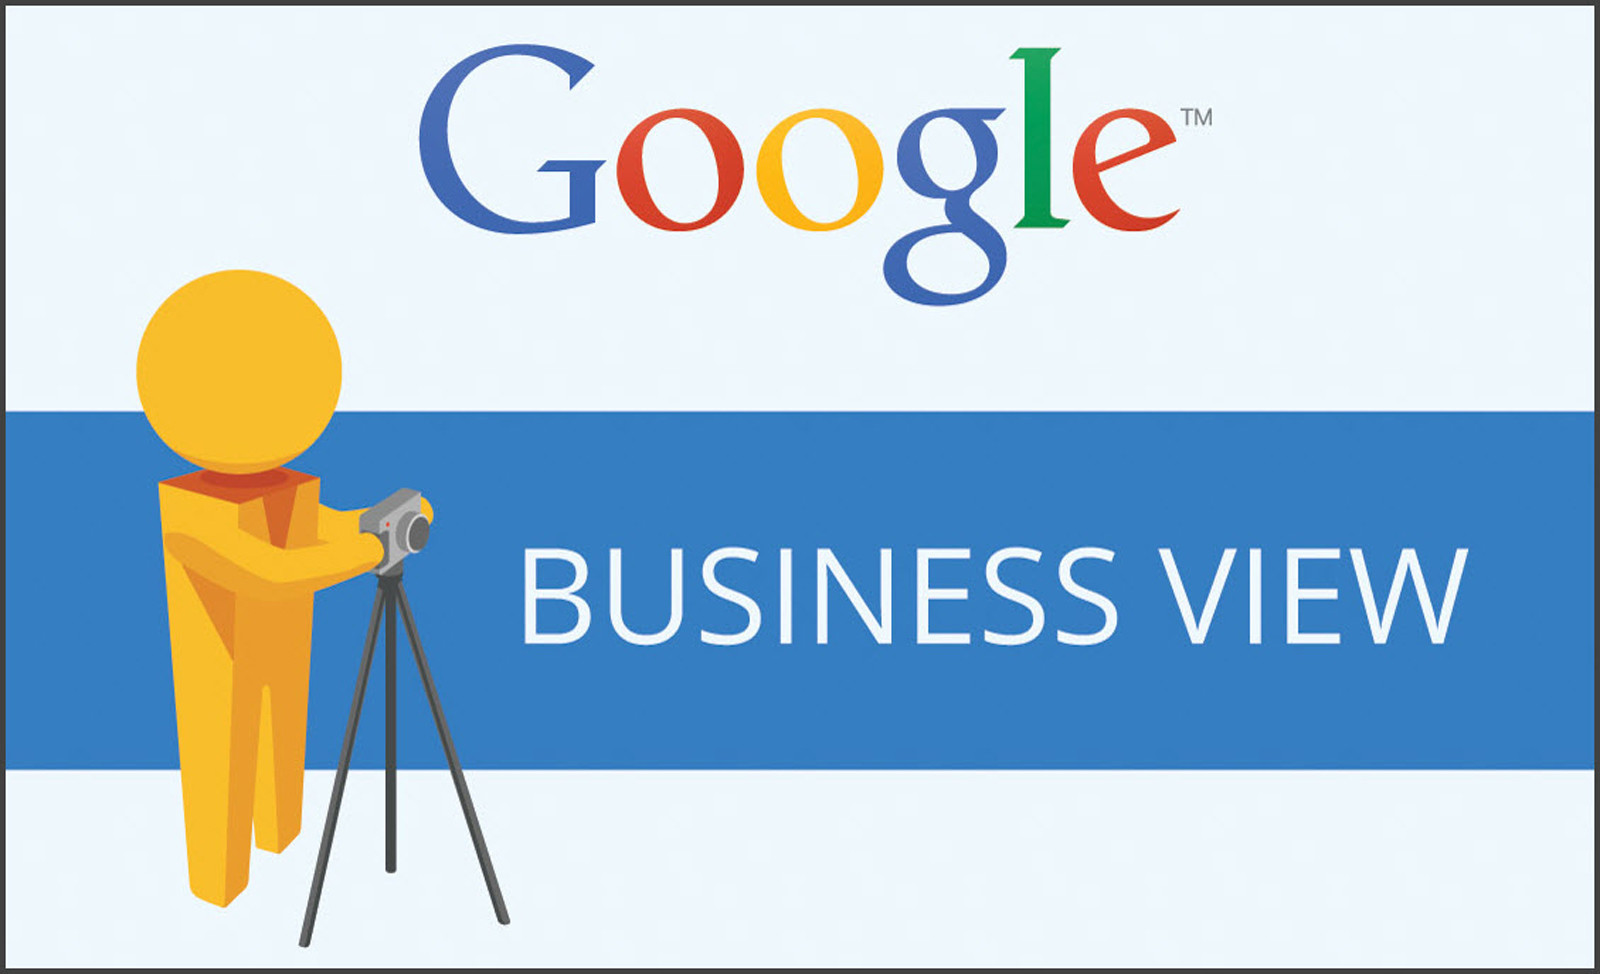 Google-Business-View